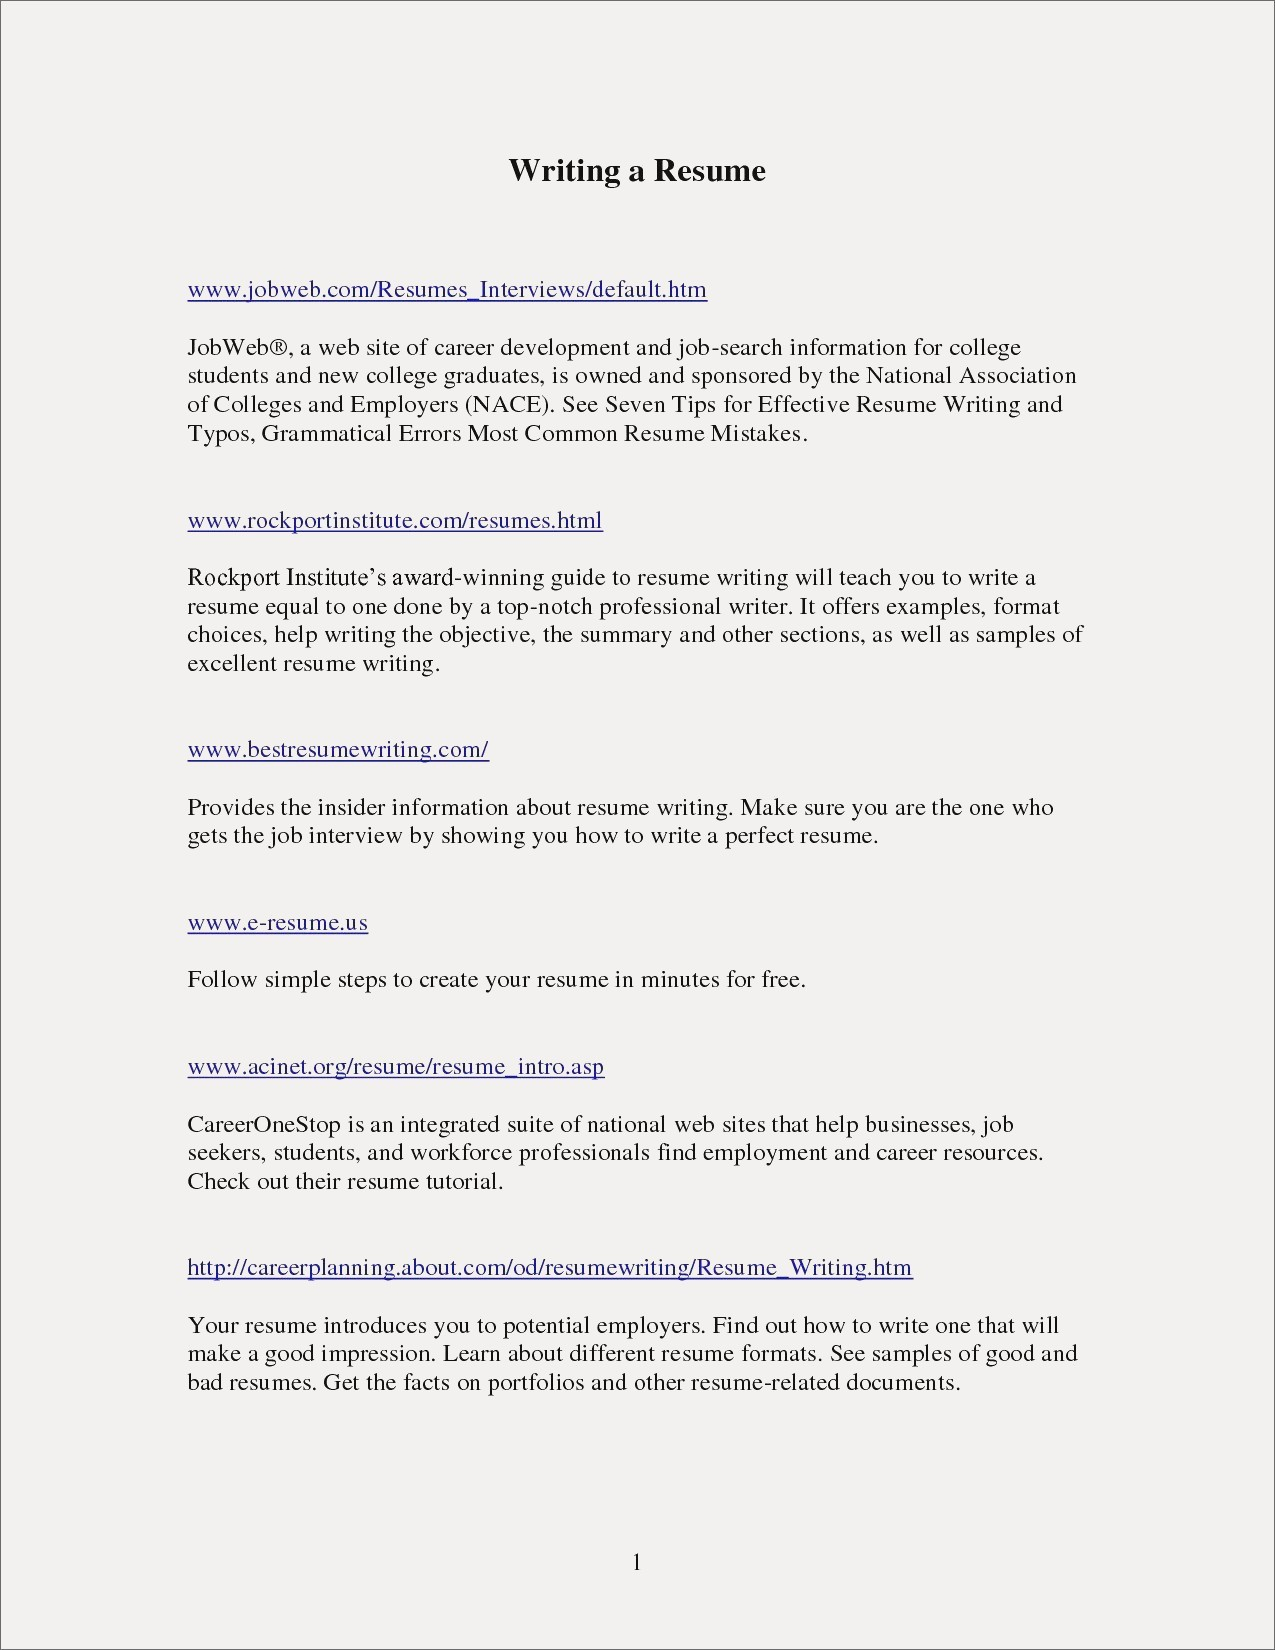 Is My Perfect Resume Safe - How to Write the Perfect Resume Save Sample Winning Resumes New